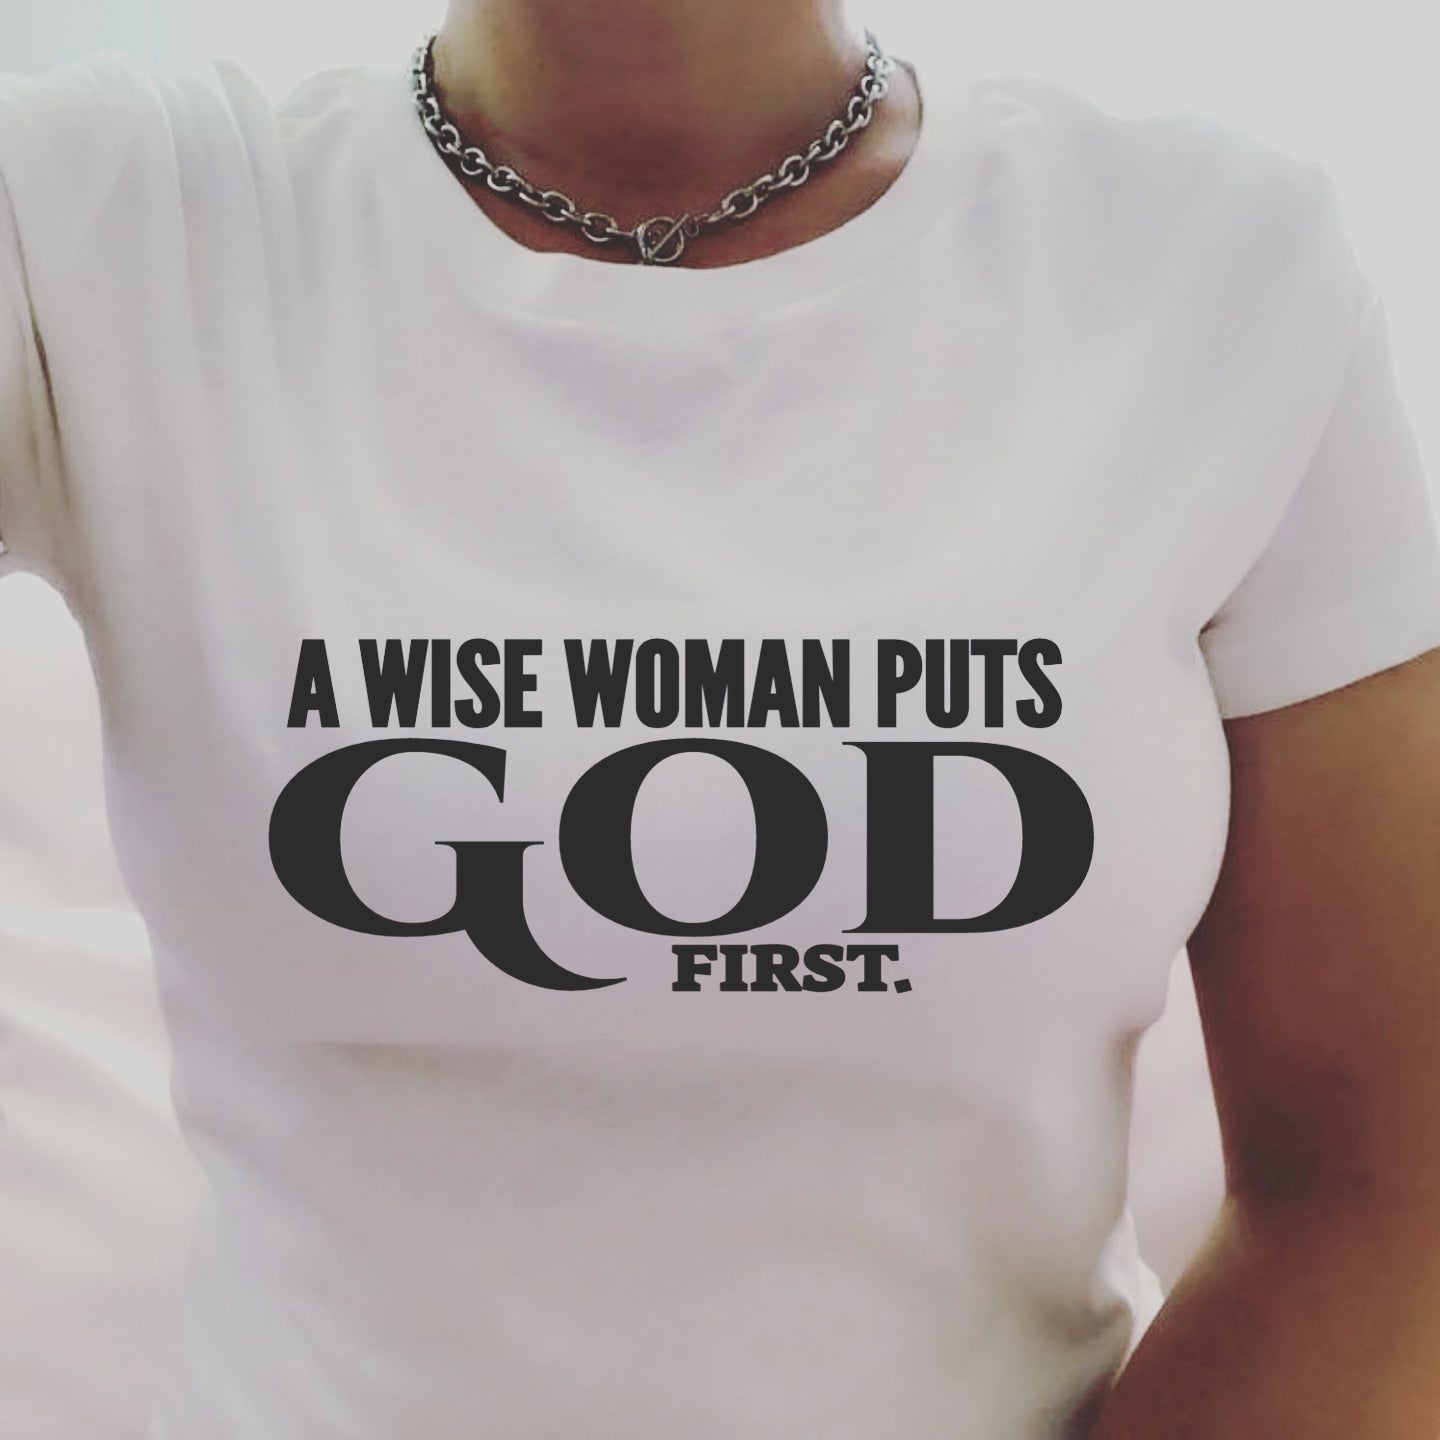 A Wise Woman Puts God First.